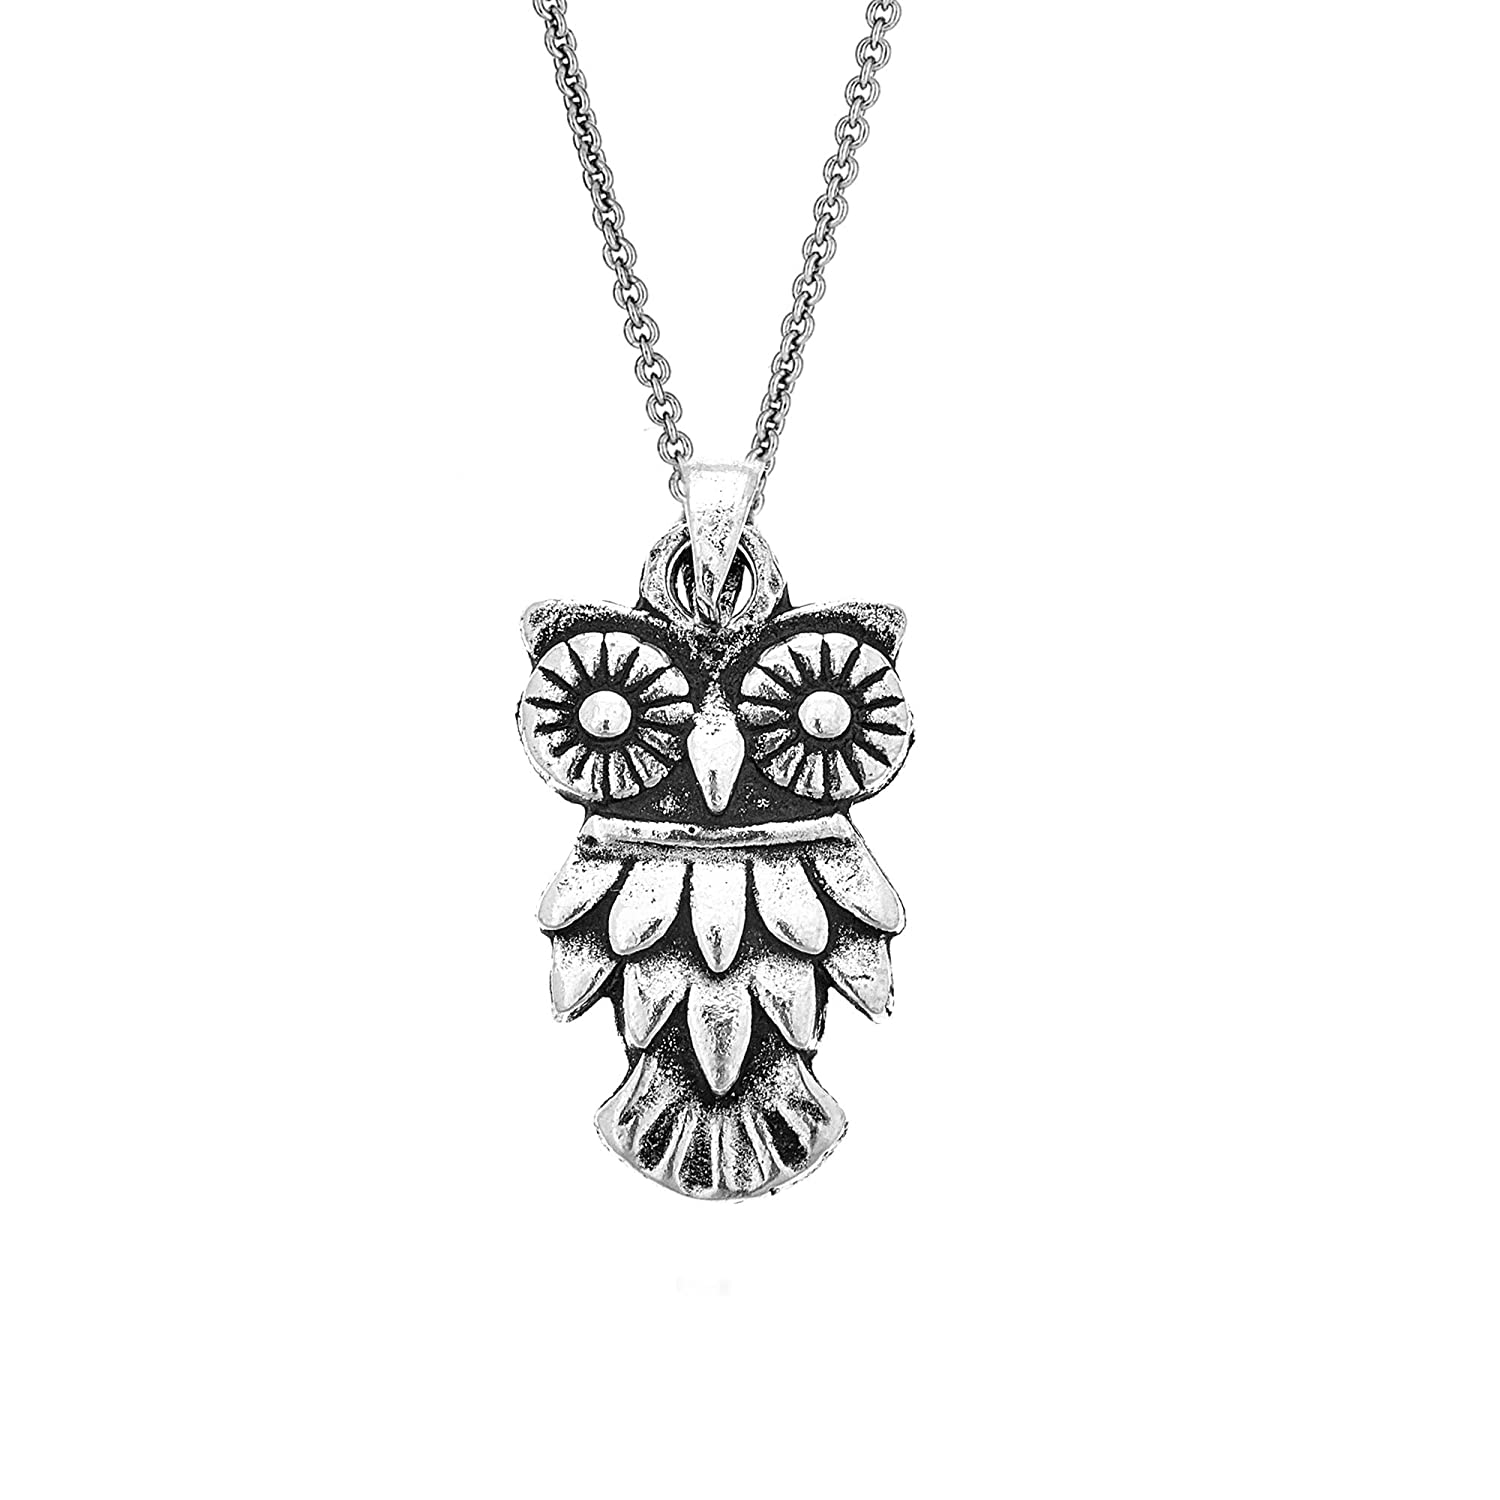 Ritastephens Sterling Silver Owl Charm Pendant Necklace 18 Inches